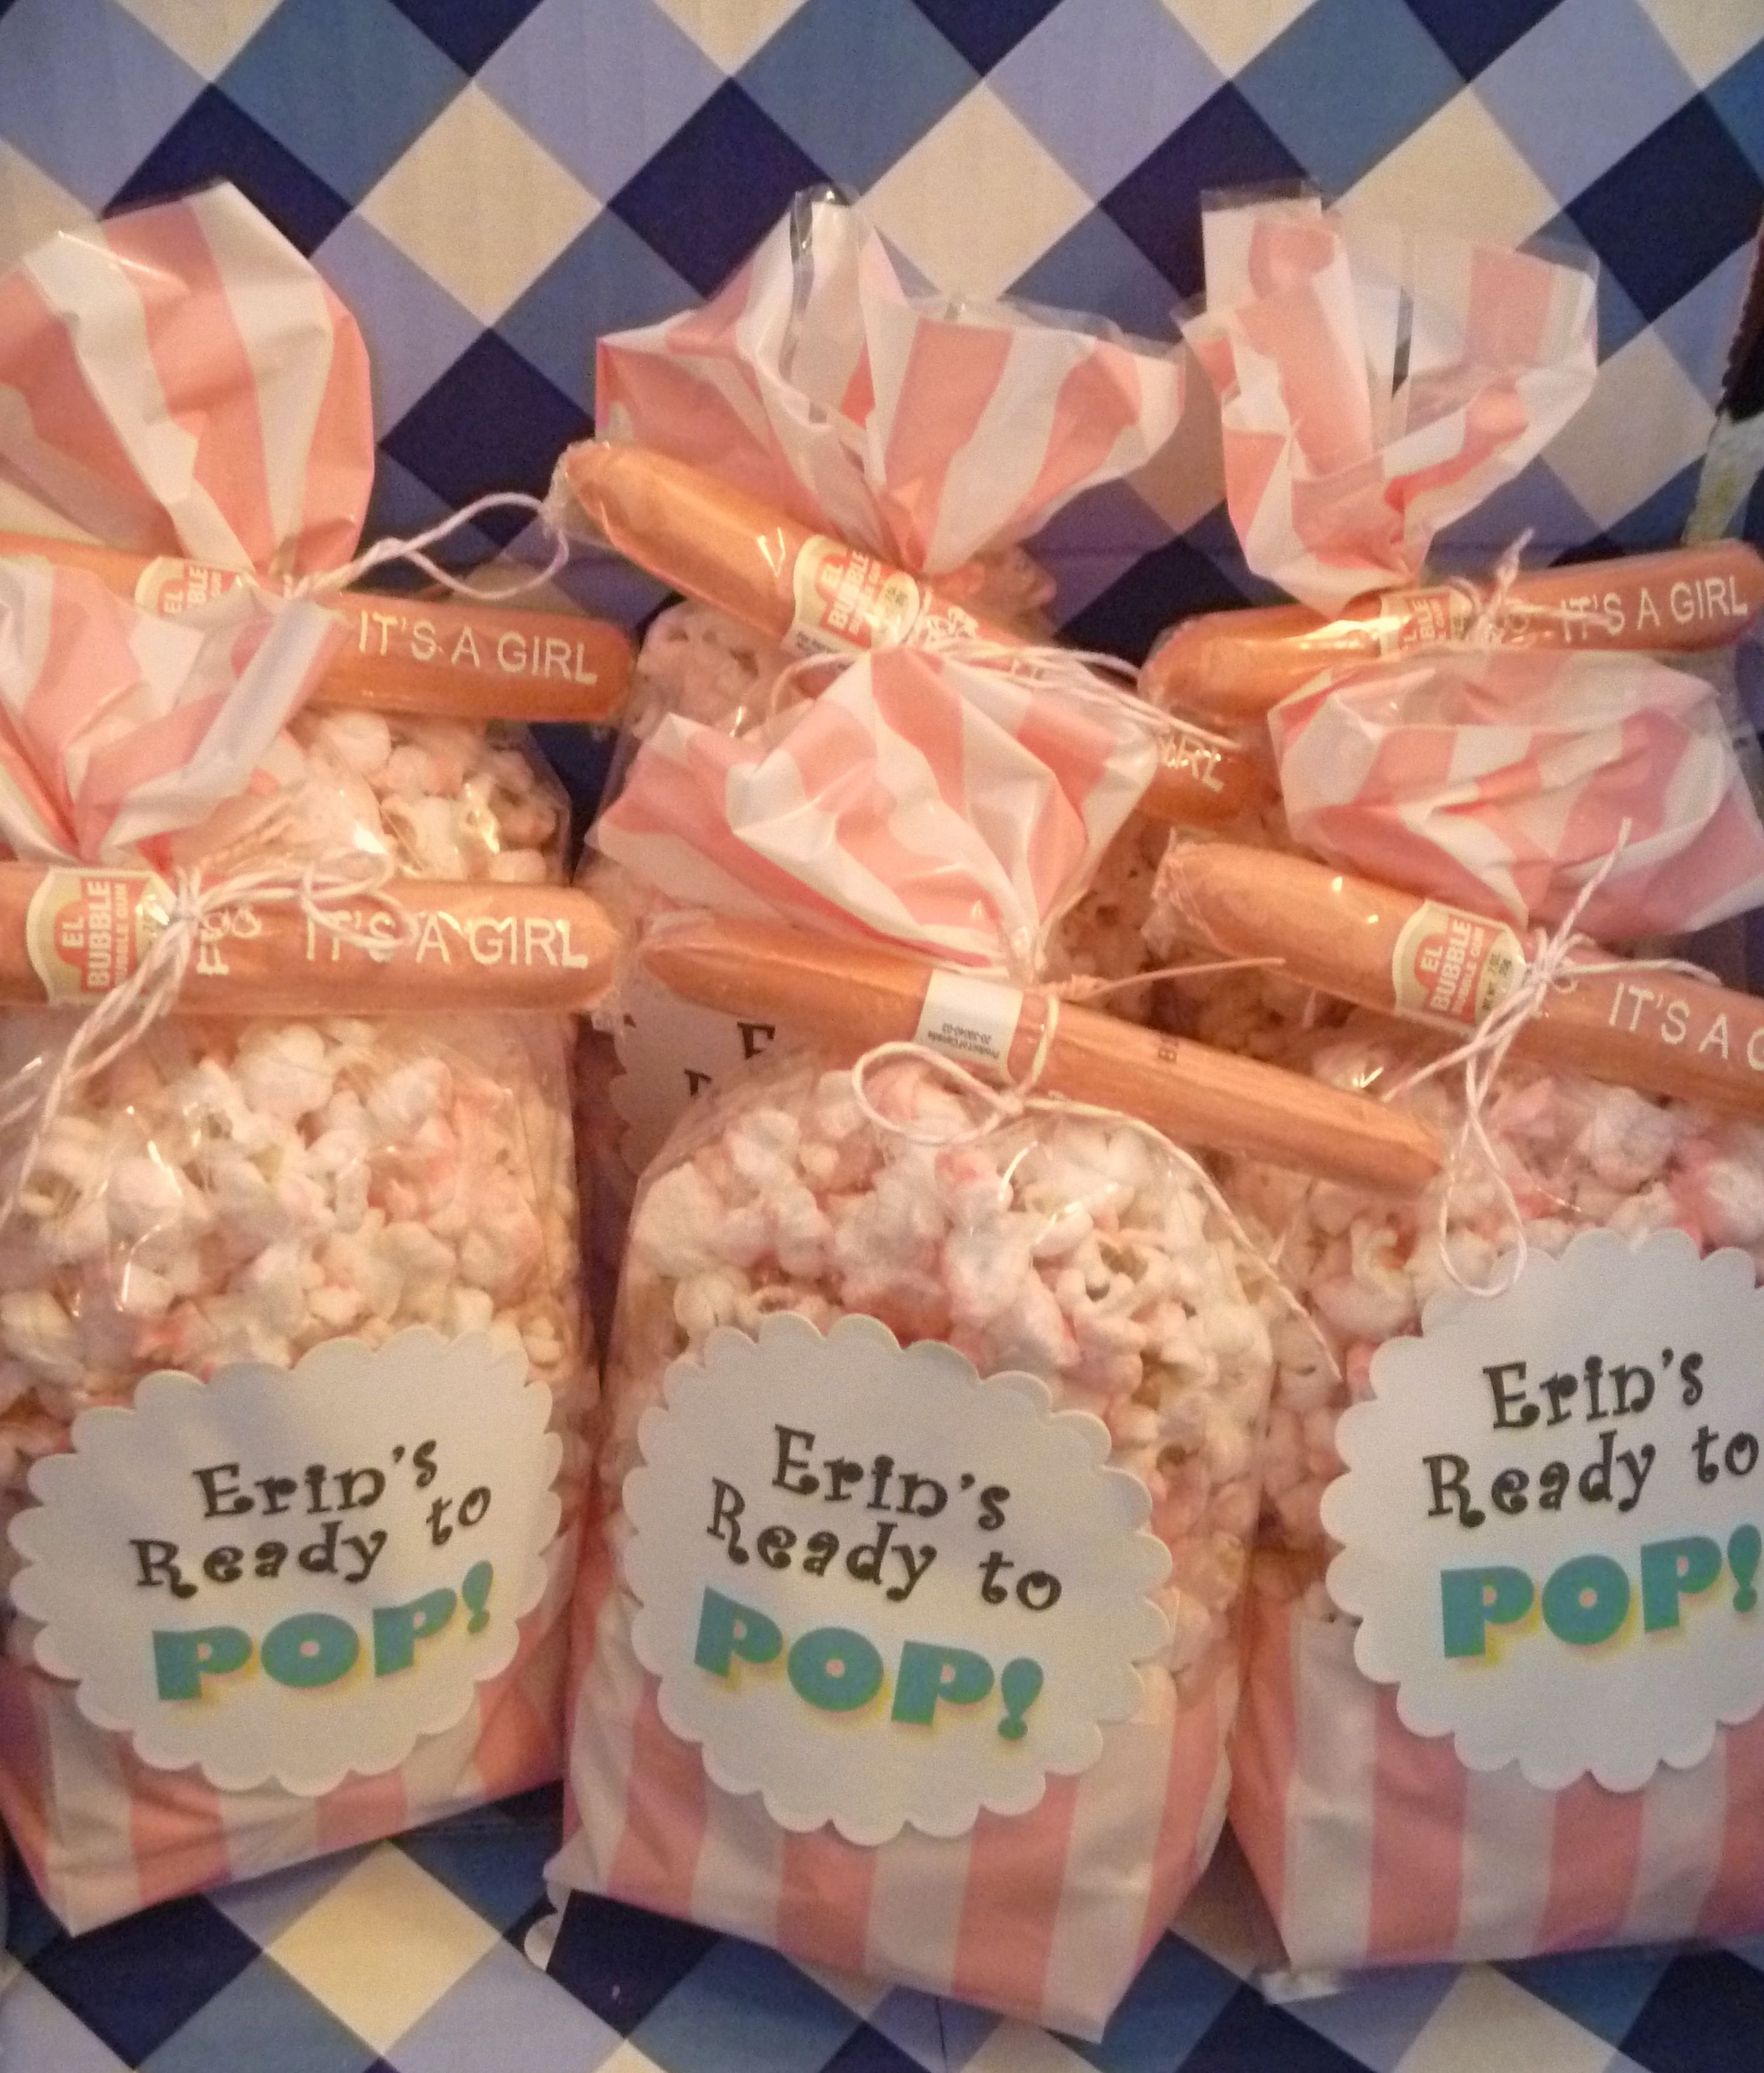 10 Attractive About To Pop Baby Shower Ideas salty sweet delicious ready to pop popcorn baby shower favors 2020